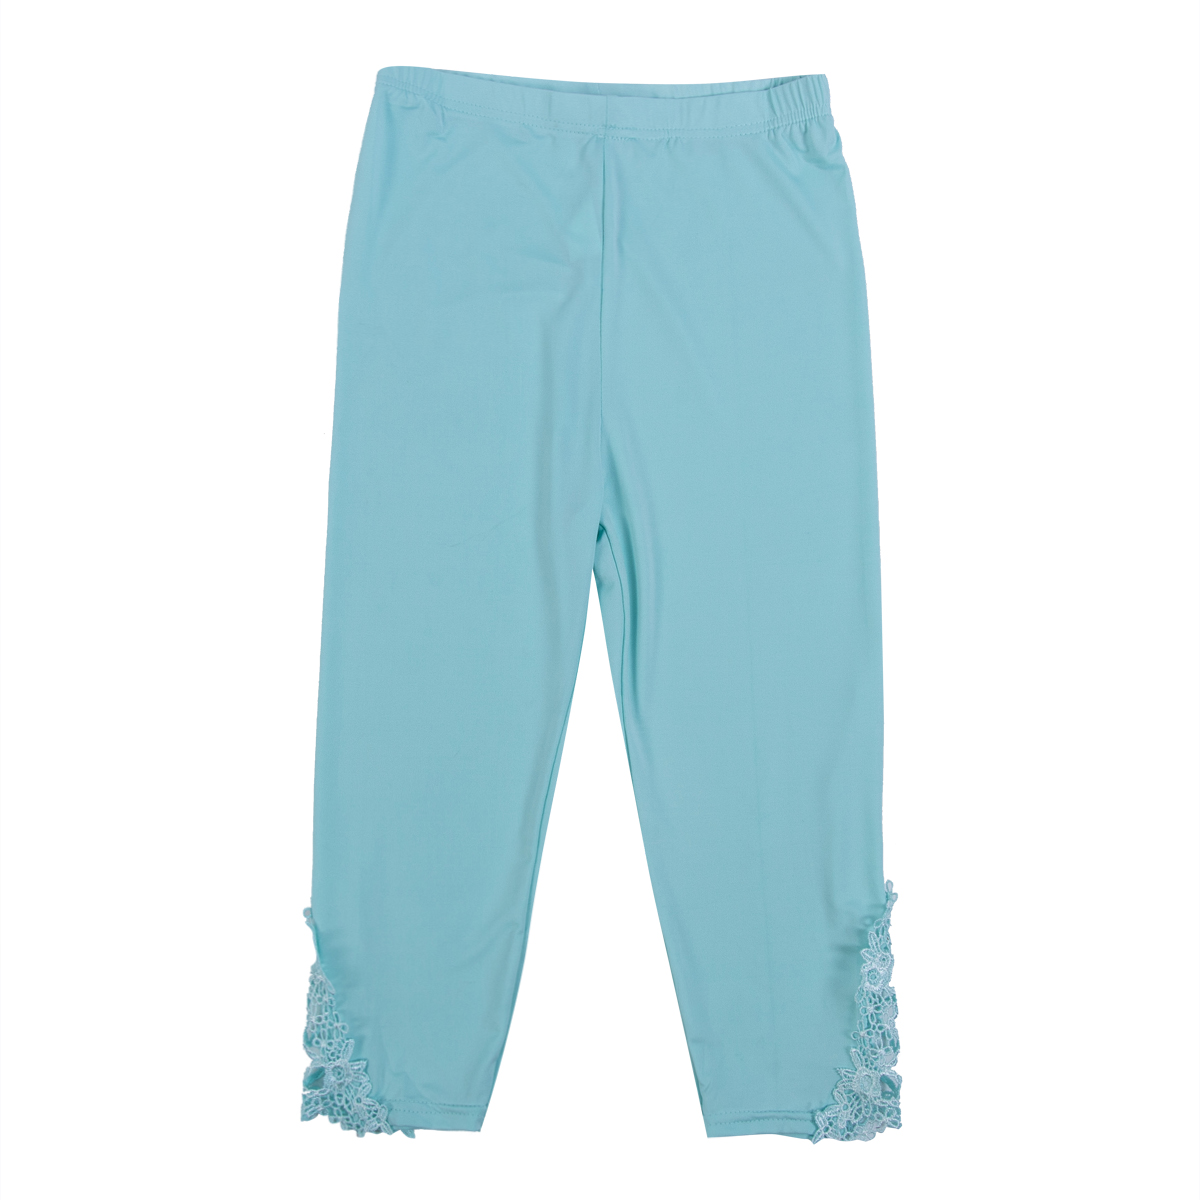 Image 4 - Hot Womens Crop 3/4 Length Leggings Clothes Ladies High Waist Pants Capri Cropped Lace Summer Modal High Quality Pants New-in Pants & Capris from Women's Clothing